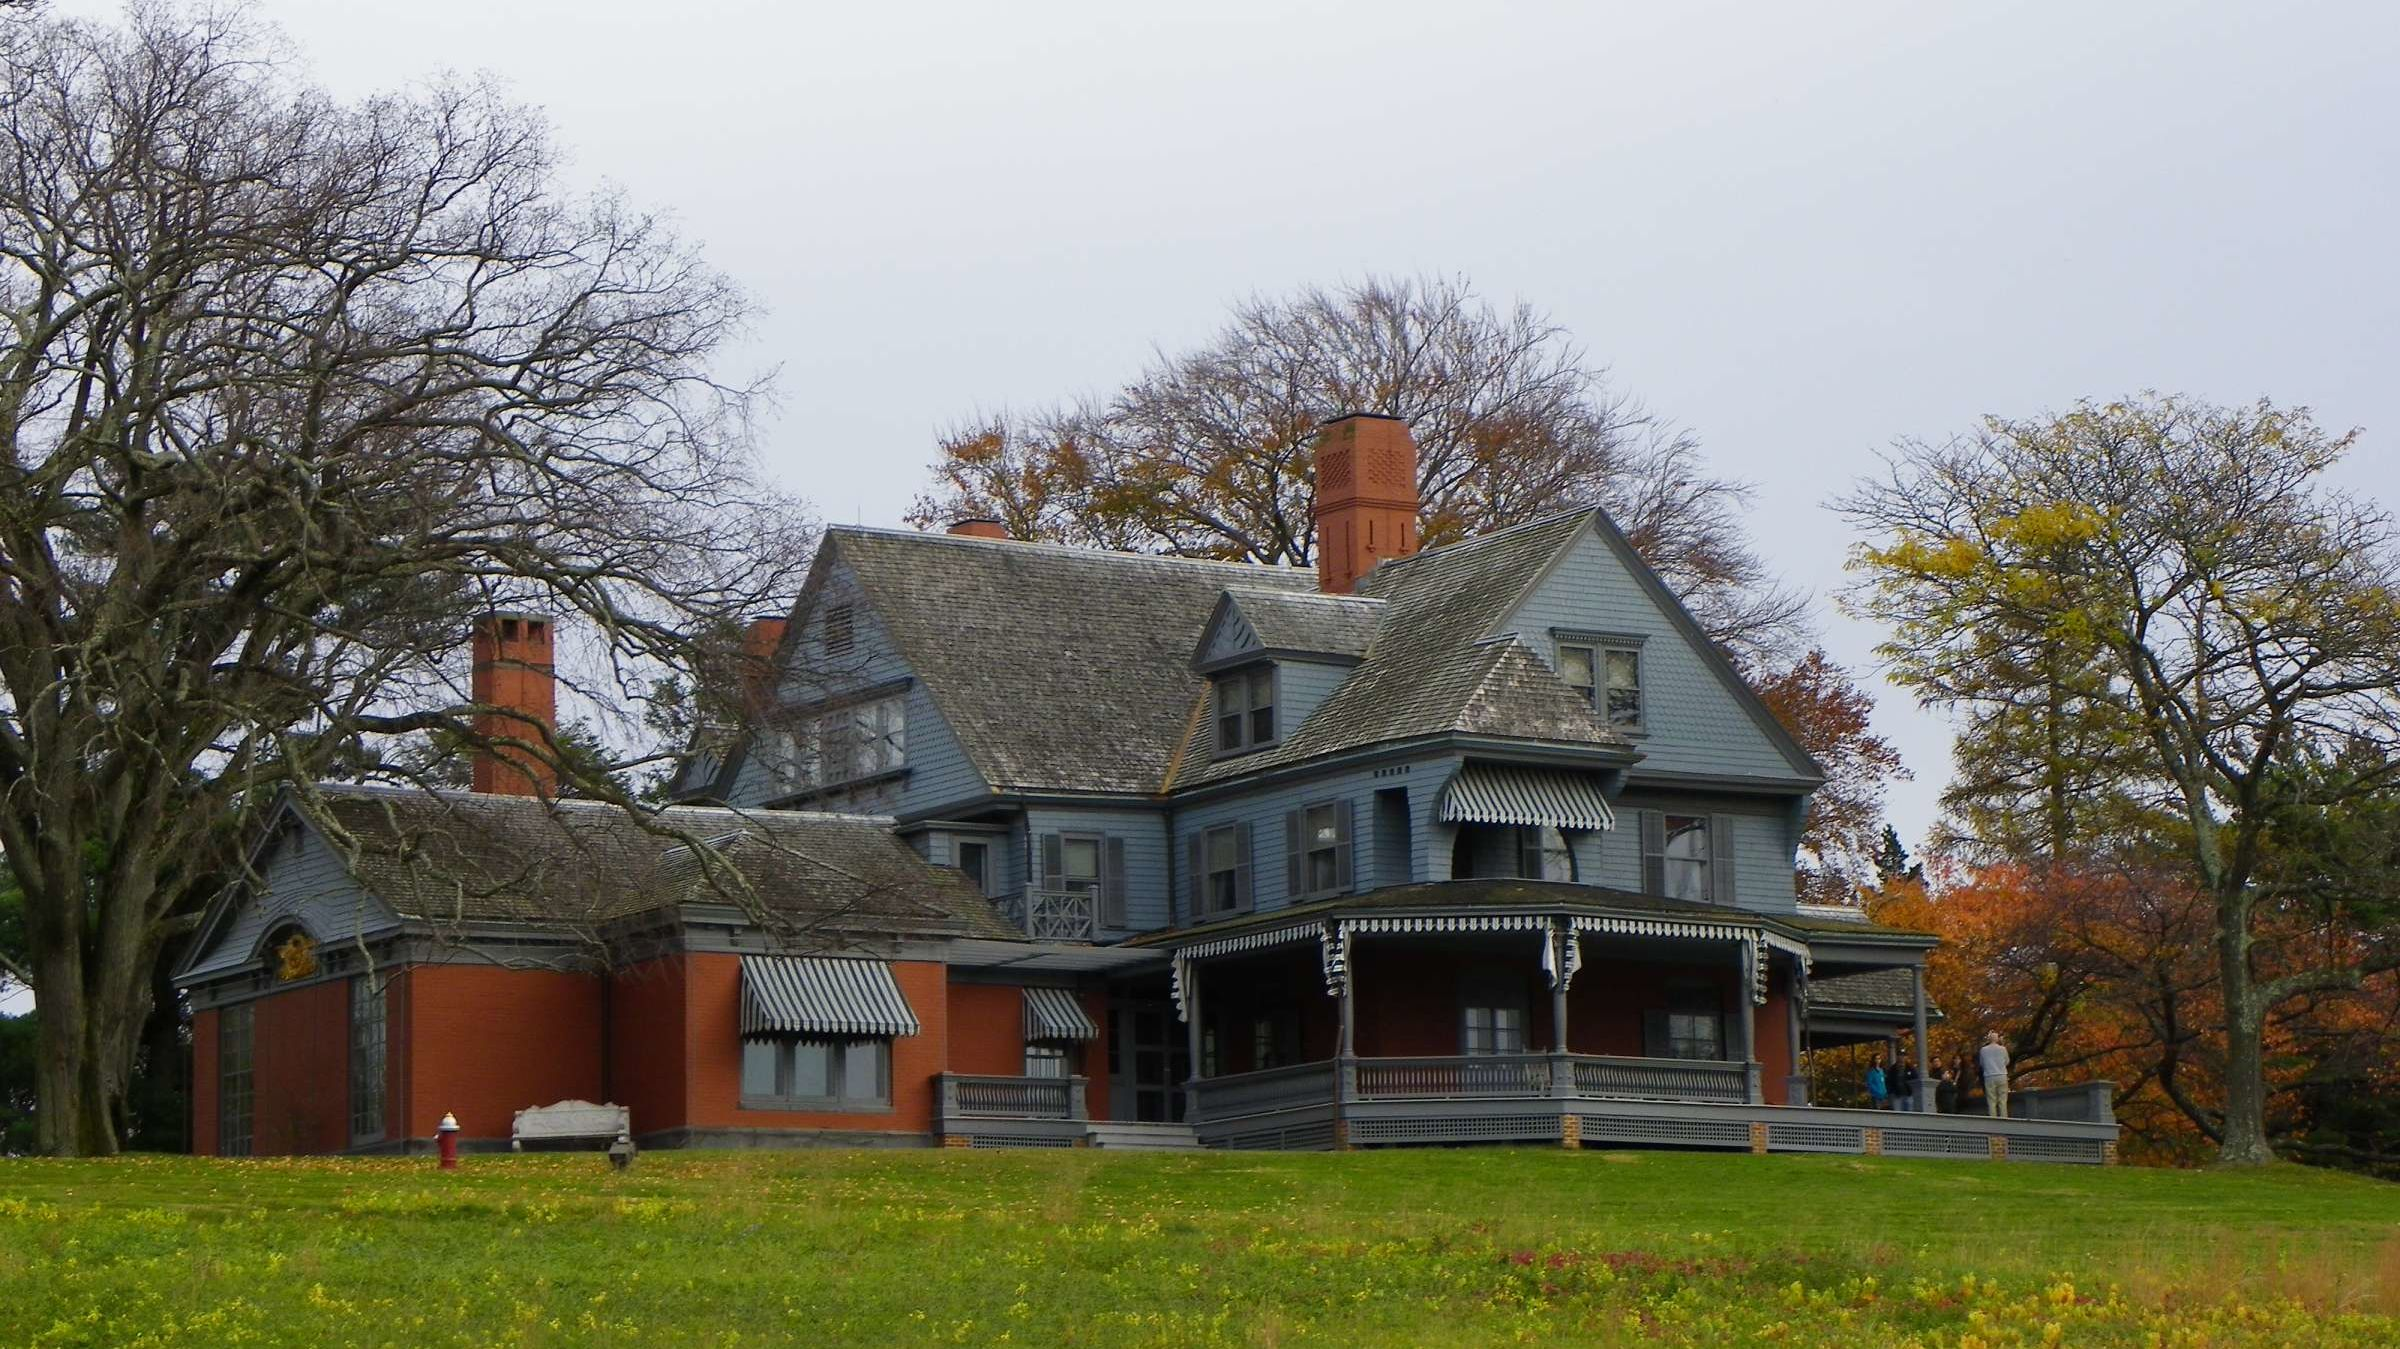 10 Facts About Sagamore Hill, Theodore Roosevelt's Home